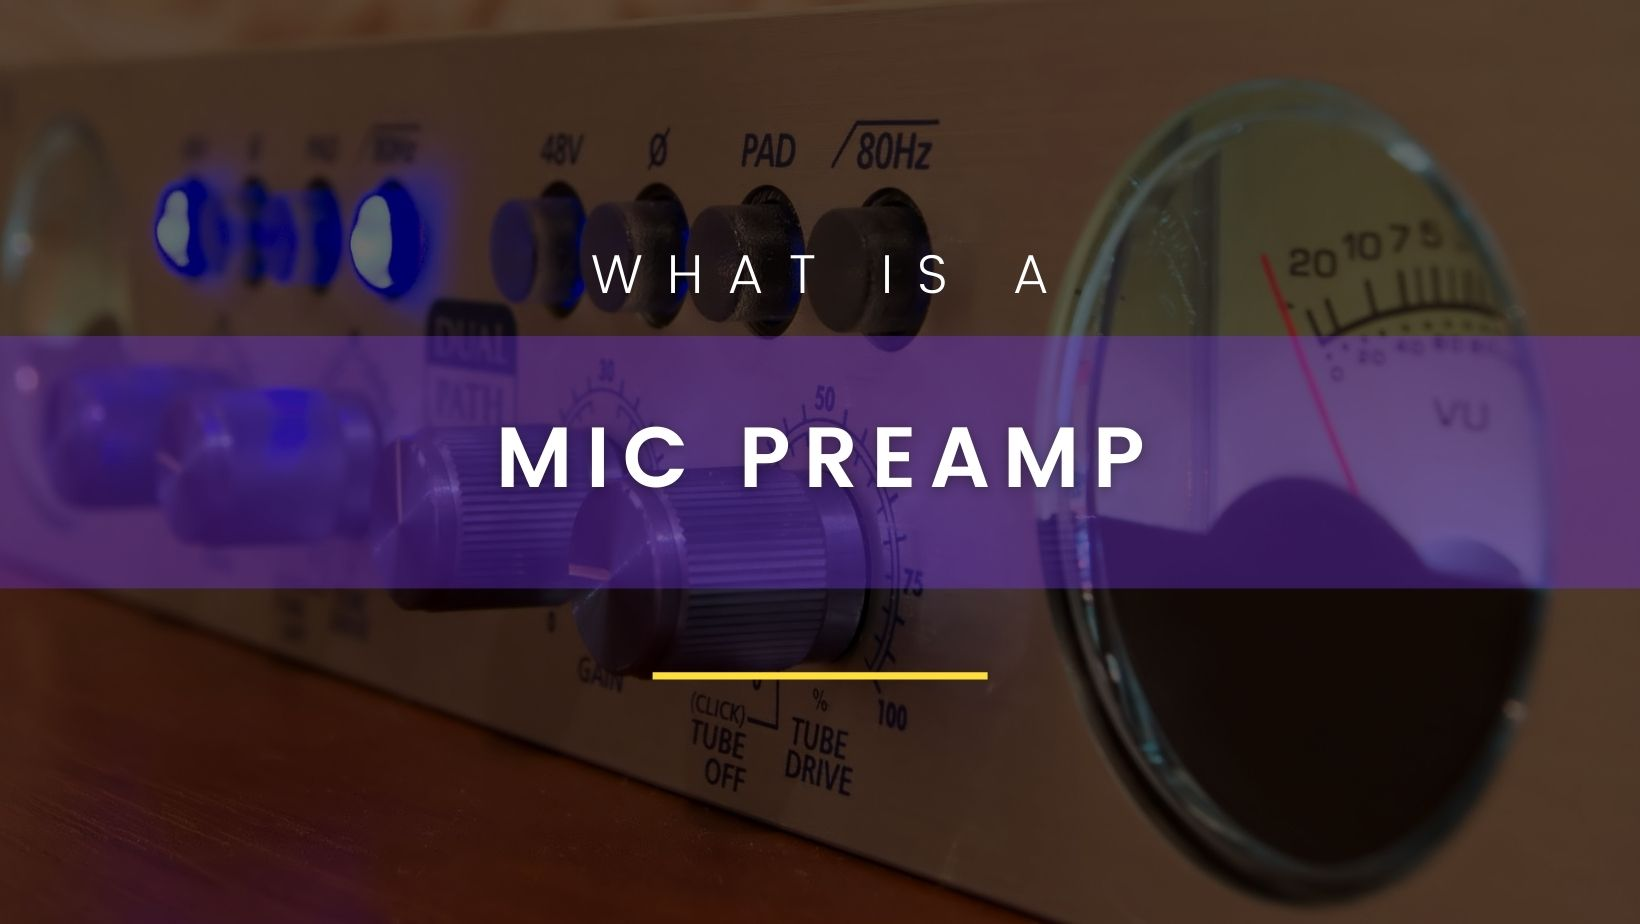 What is a mic preamp?